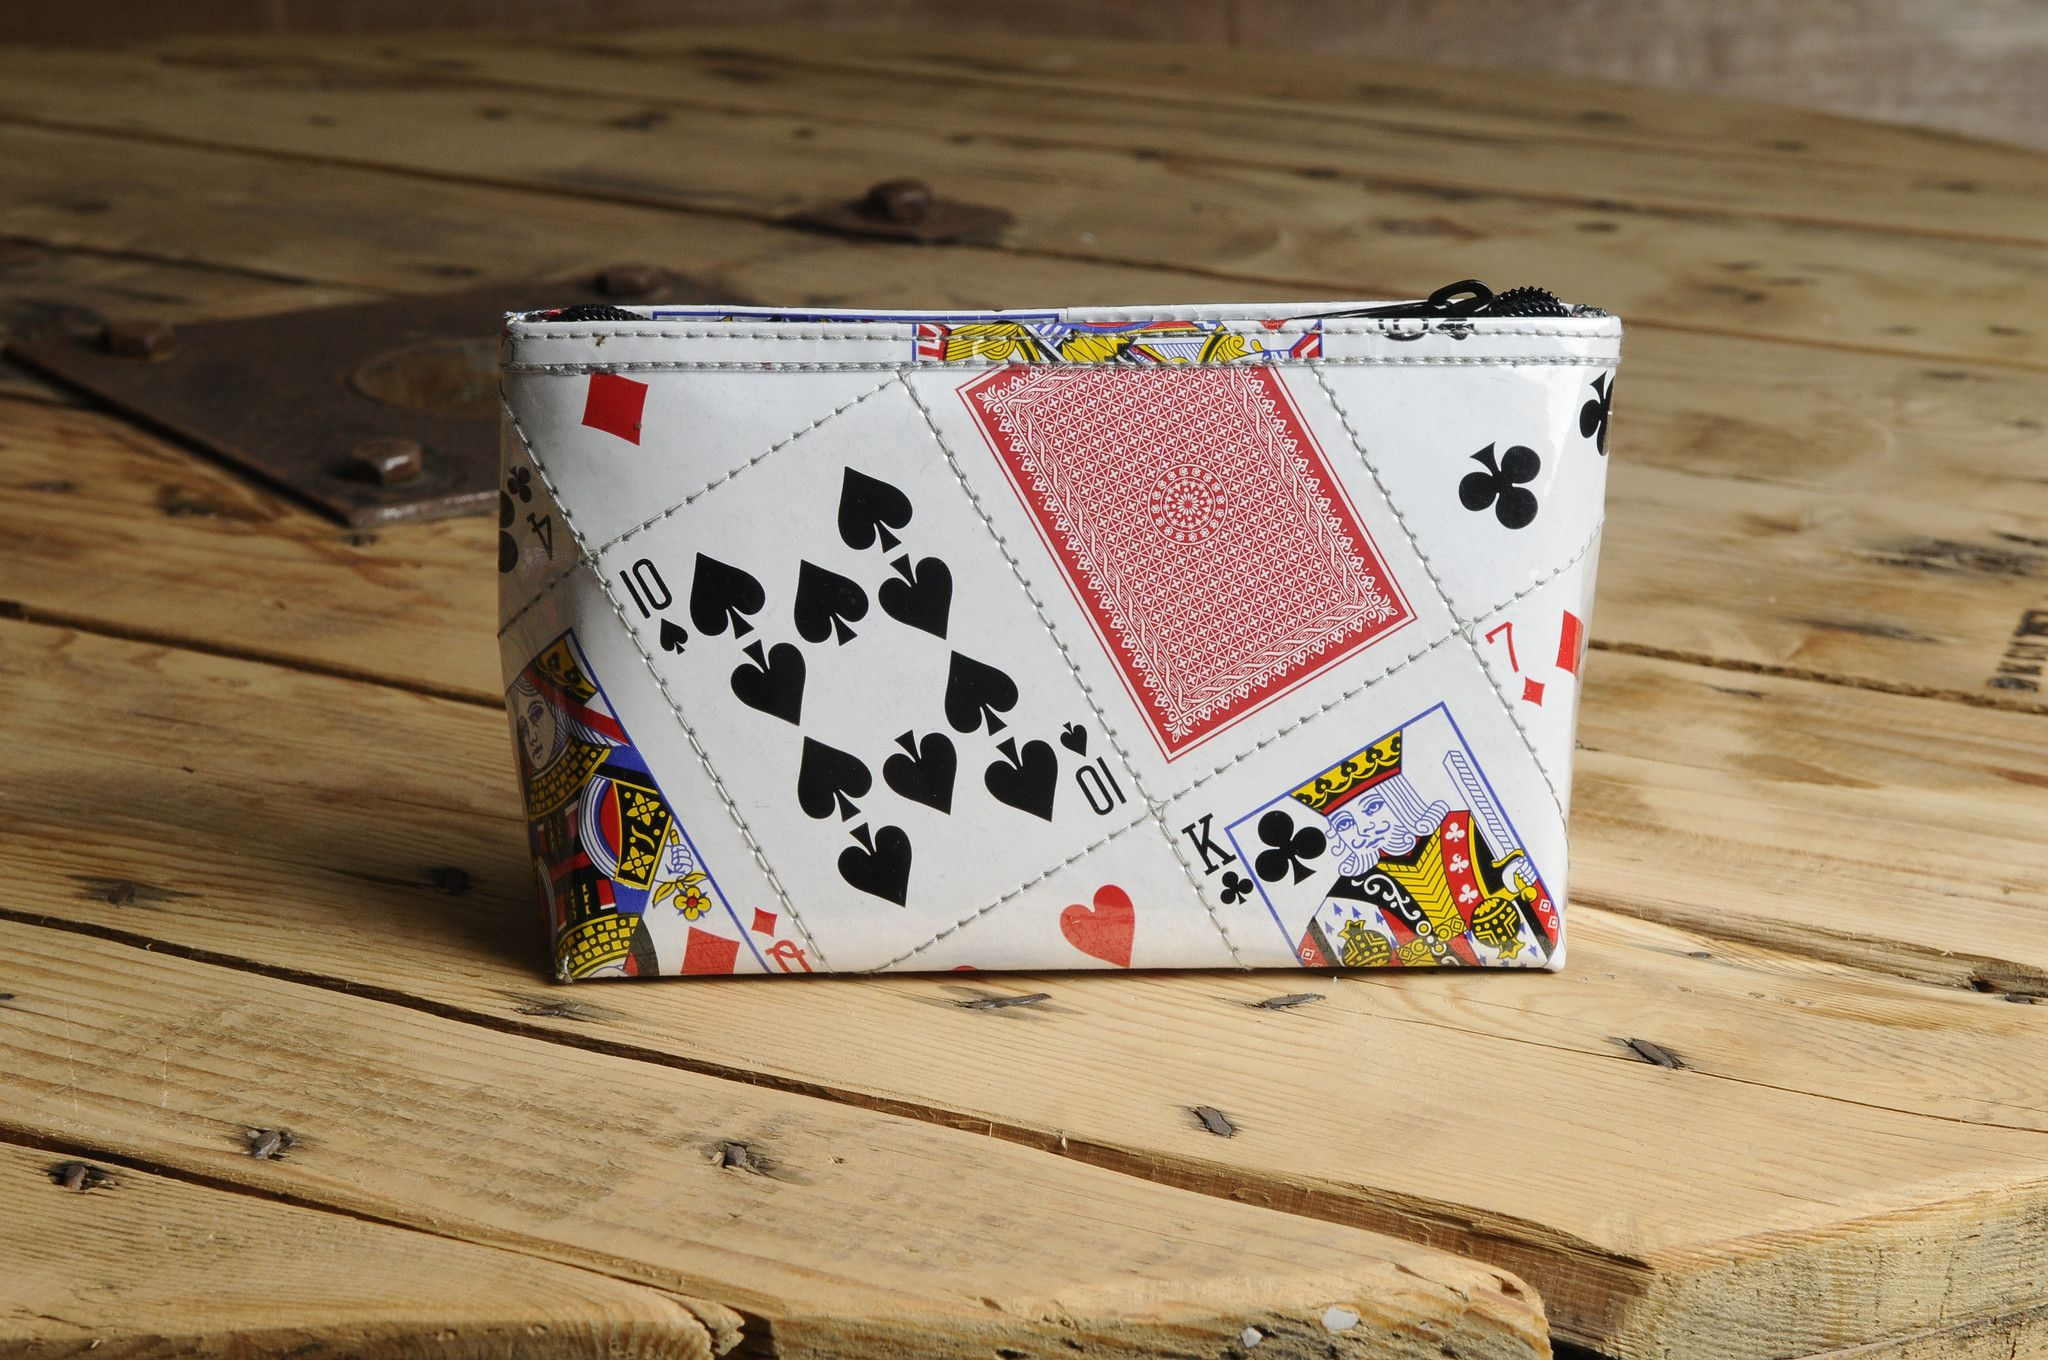 Upcycled Makeup bag Large - Playing cards from Ecommmax. Find it now at http://ift.tt/2bs1VHR! #upcycled #recycled #makeup #cards #gift #handmade